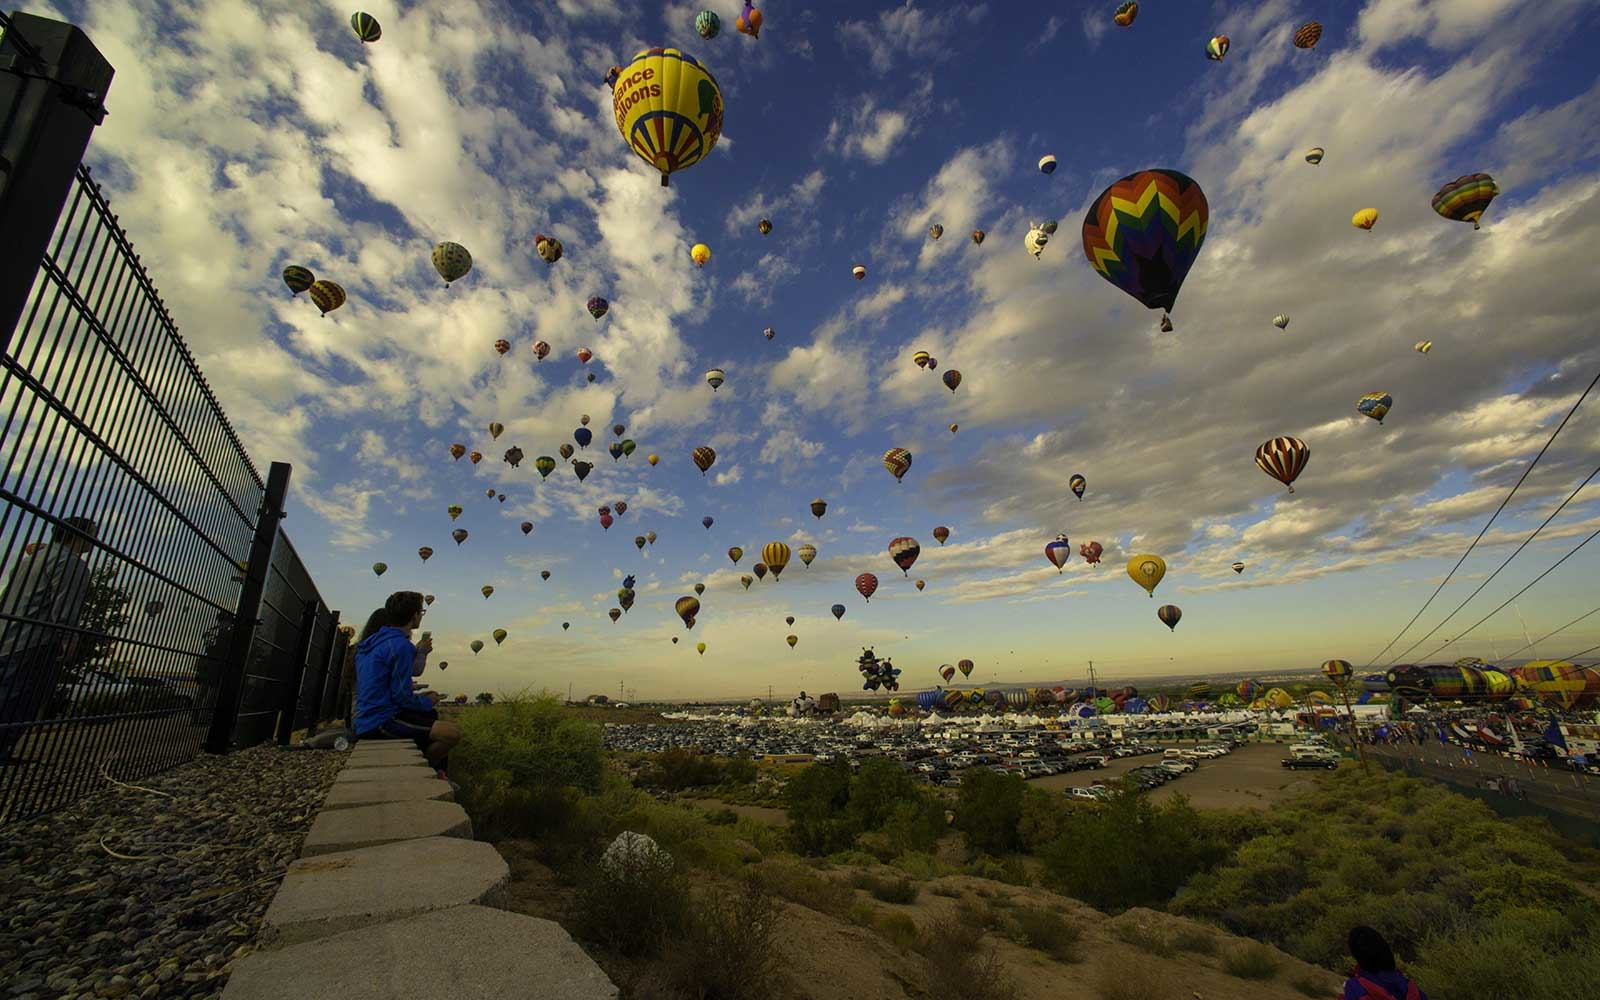 Albuquerque hot air balloons